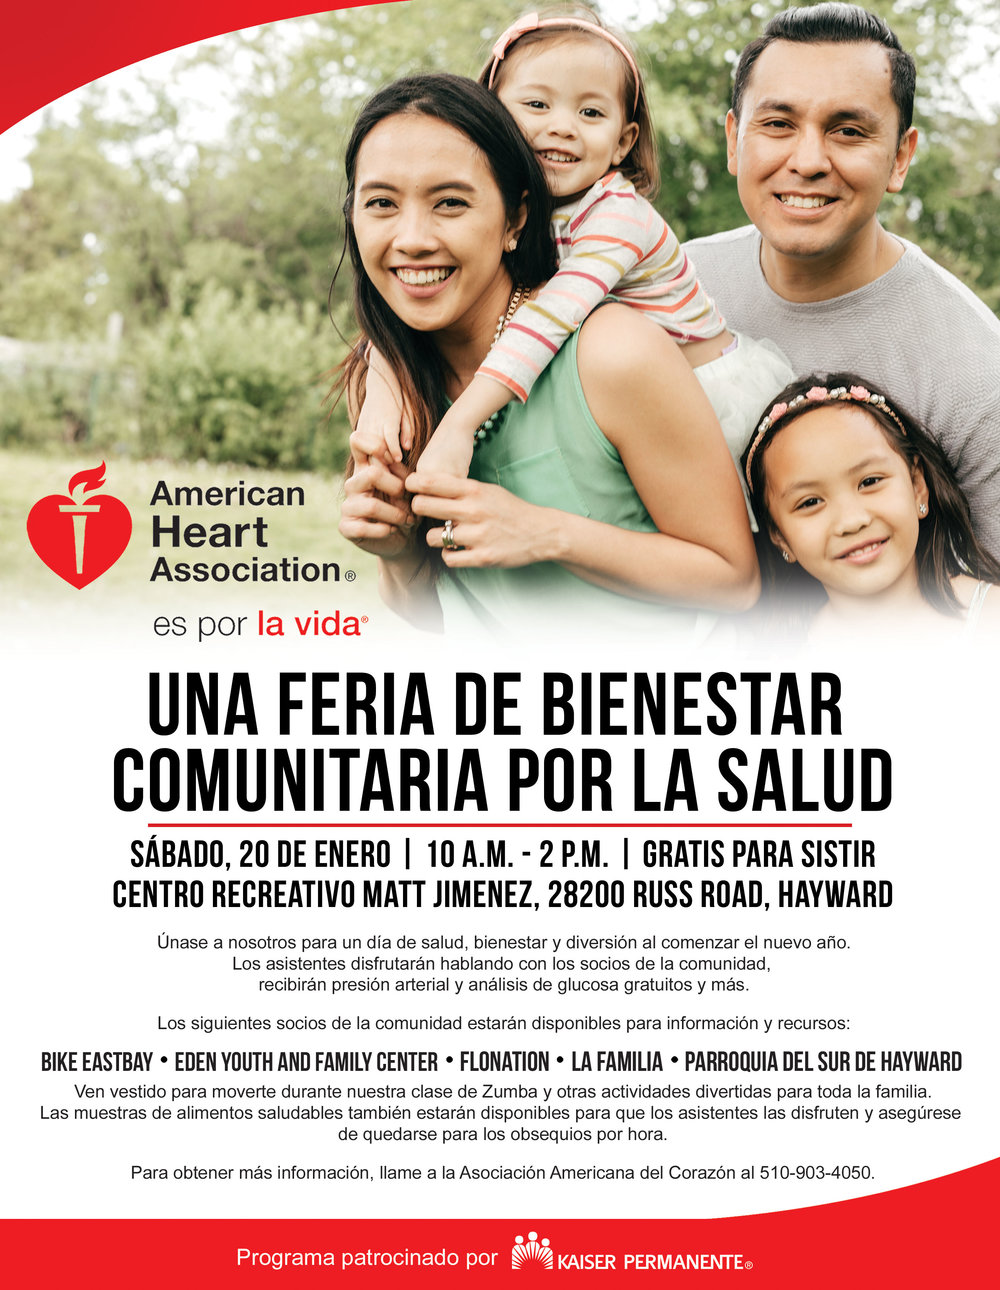 American-Heart-Association-Flyer.jpg